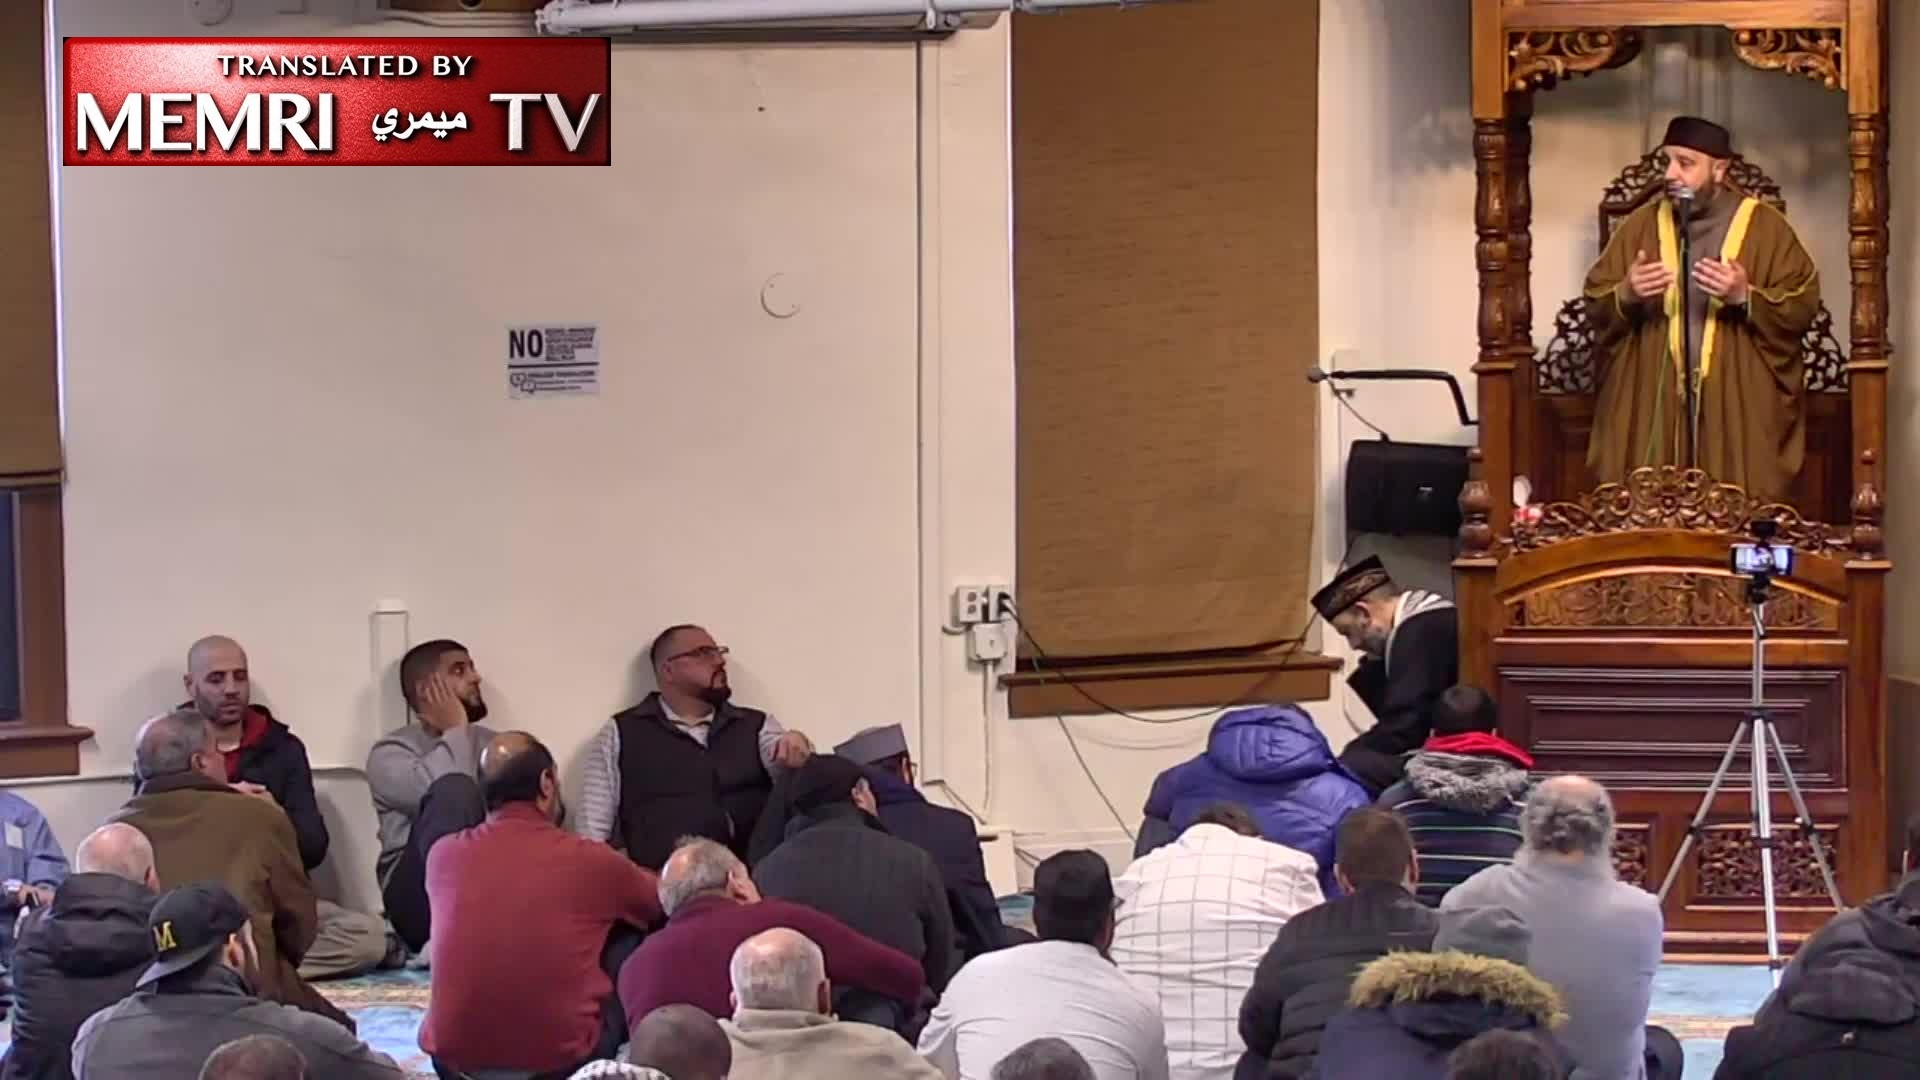 NJ Imam Mohamed Moussa: We Have Started a Workshop Training U.S. Imams How to Avoid Incitement and Hate Speech